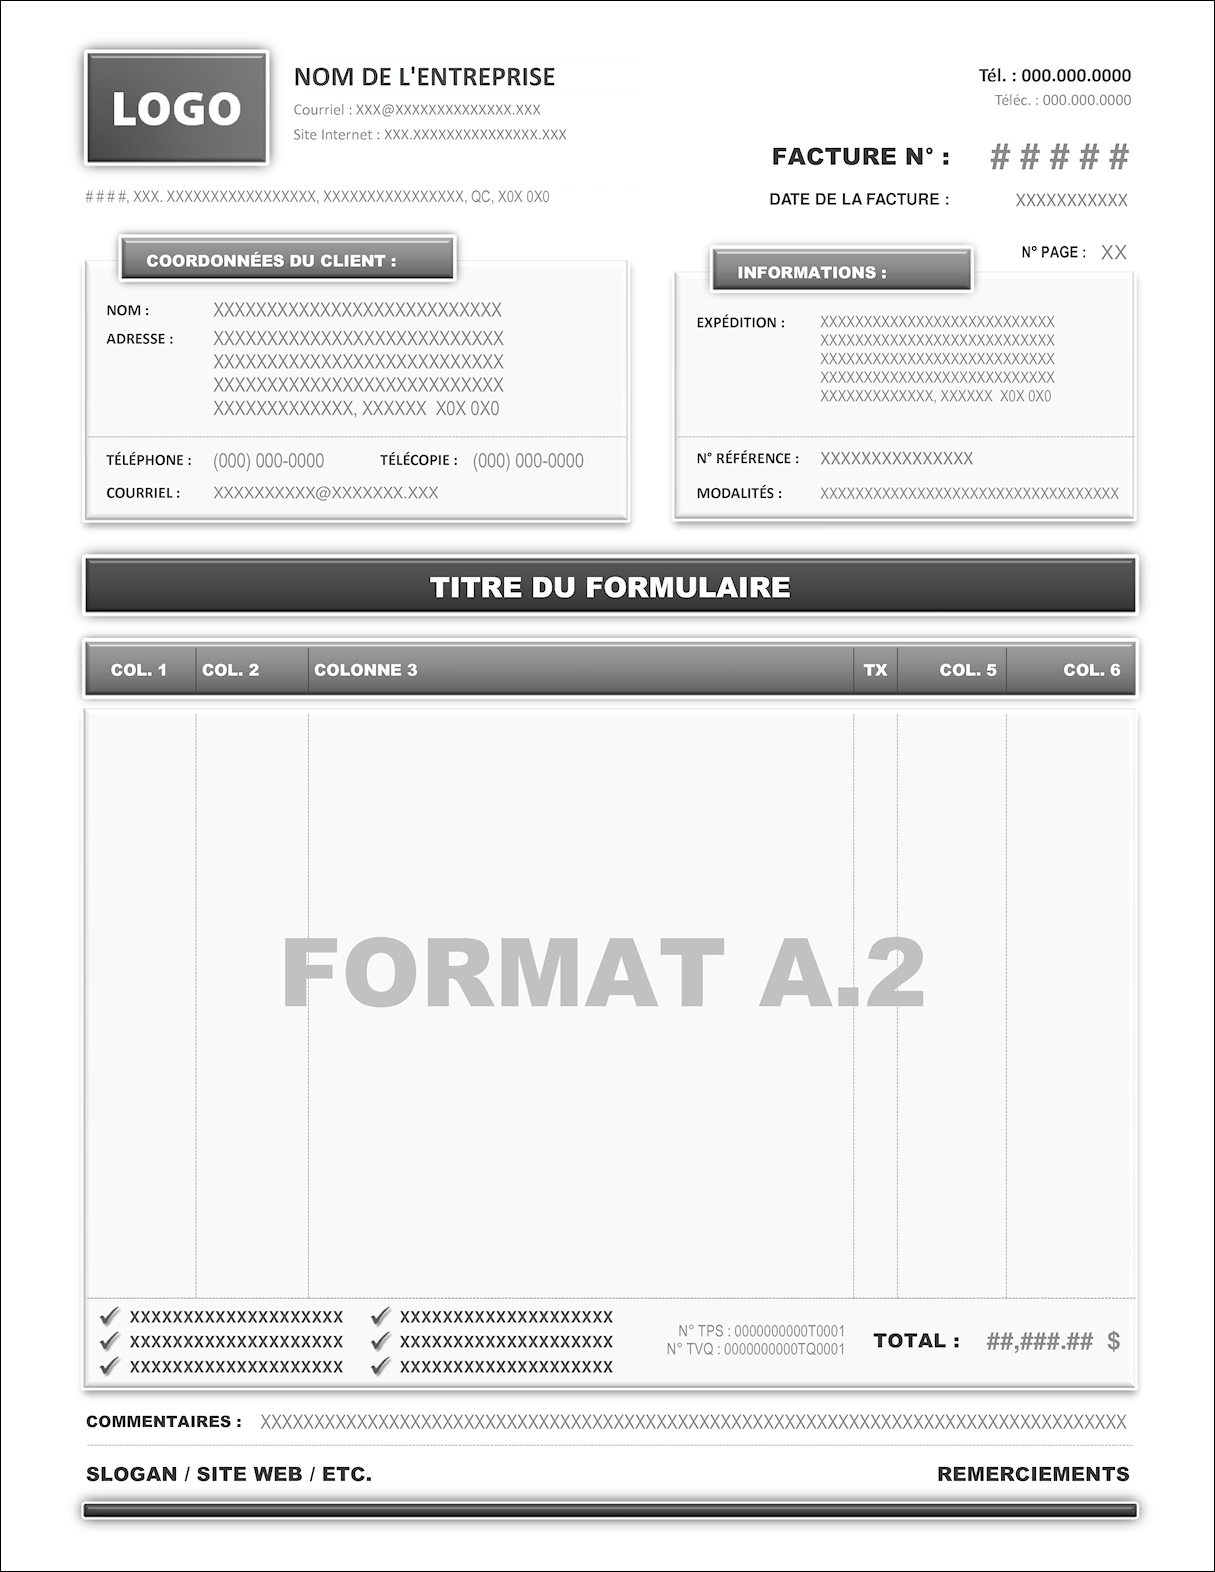 FORMAT A.2